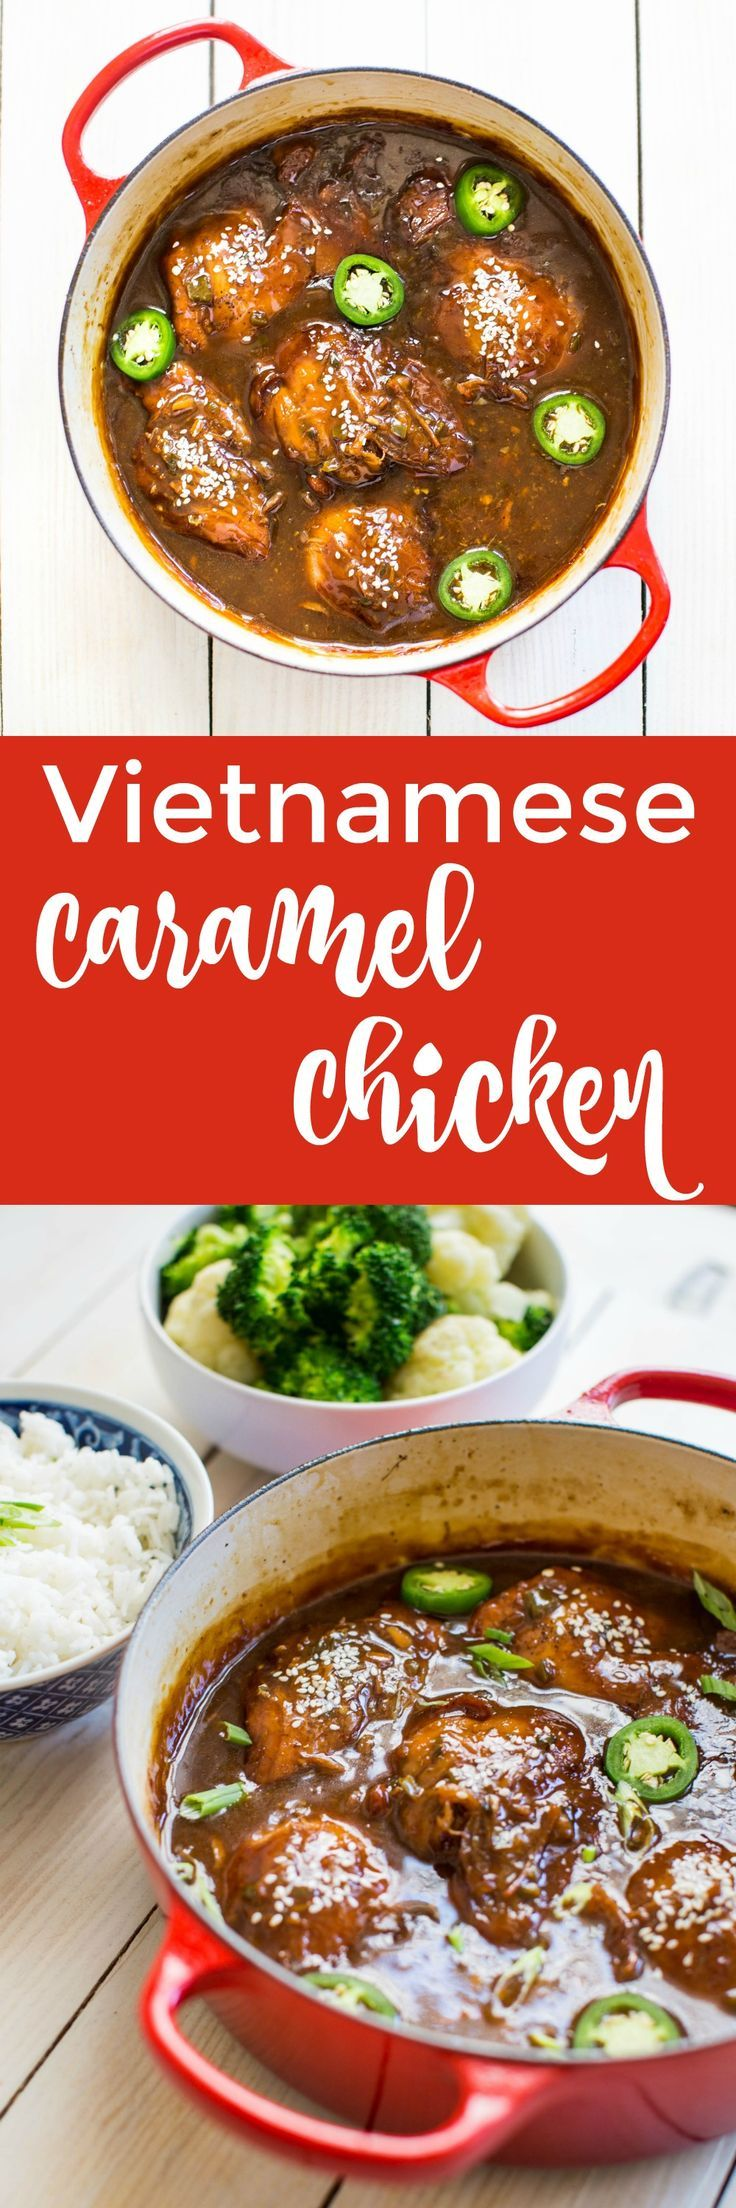 Vietnamese Caramel Chicken, Delicious Recipe To Warm You Up On A Cold Fall Night!